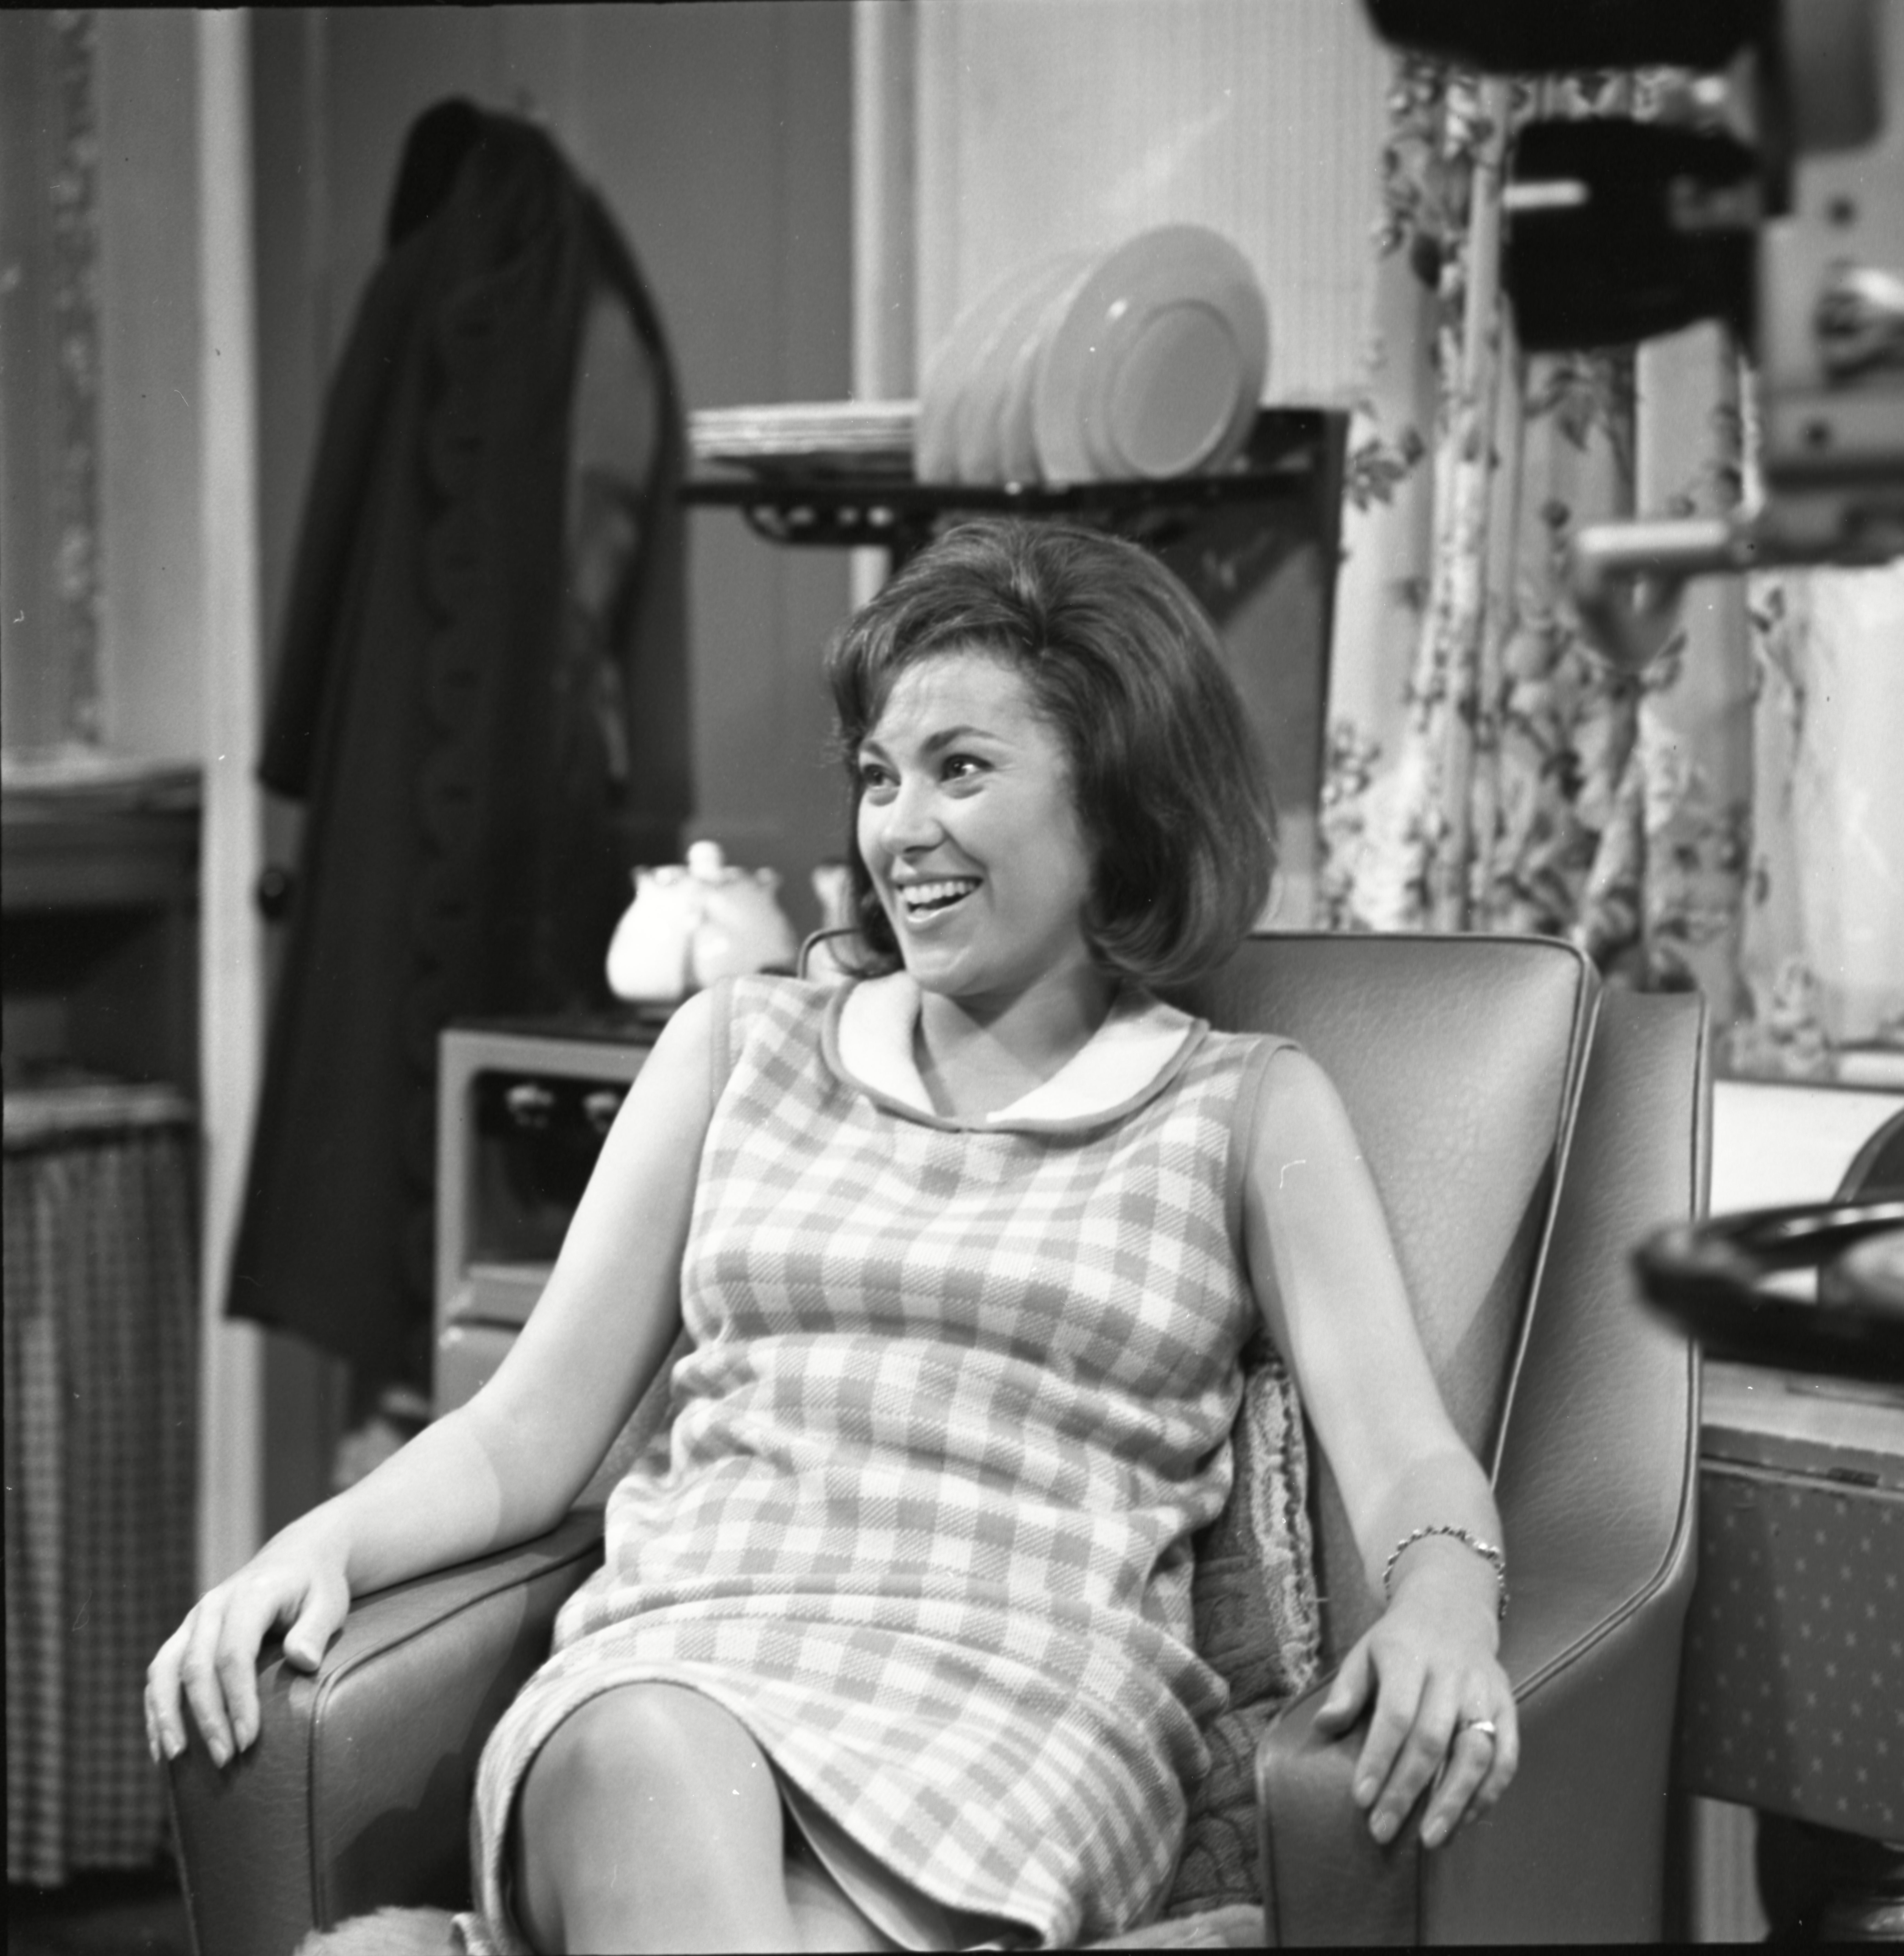 Editorial use only Mandatory Credit: Photo by ITV/REX/Shutterstock (10146224ji) Anne Cunningham (as Linda Cheveski) 'Coronation Street TV Show - 1966 Coronation Street is a long running Television soap opera set in the fictional North of England town of Weatherfield. Created by Tony Warren. First broadcast on December 9th, 1960. Produced by ITV Granada. Coronation Street is a long running Television soap opera set in the fictional North of England town of Weatherfield. Created by Tony Warren. First broadcast on December 9th, 1960. Produced by ITV Granada.